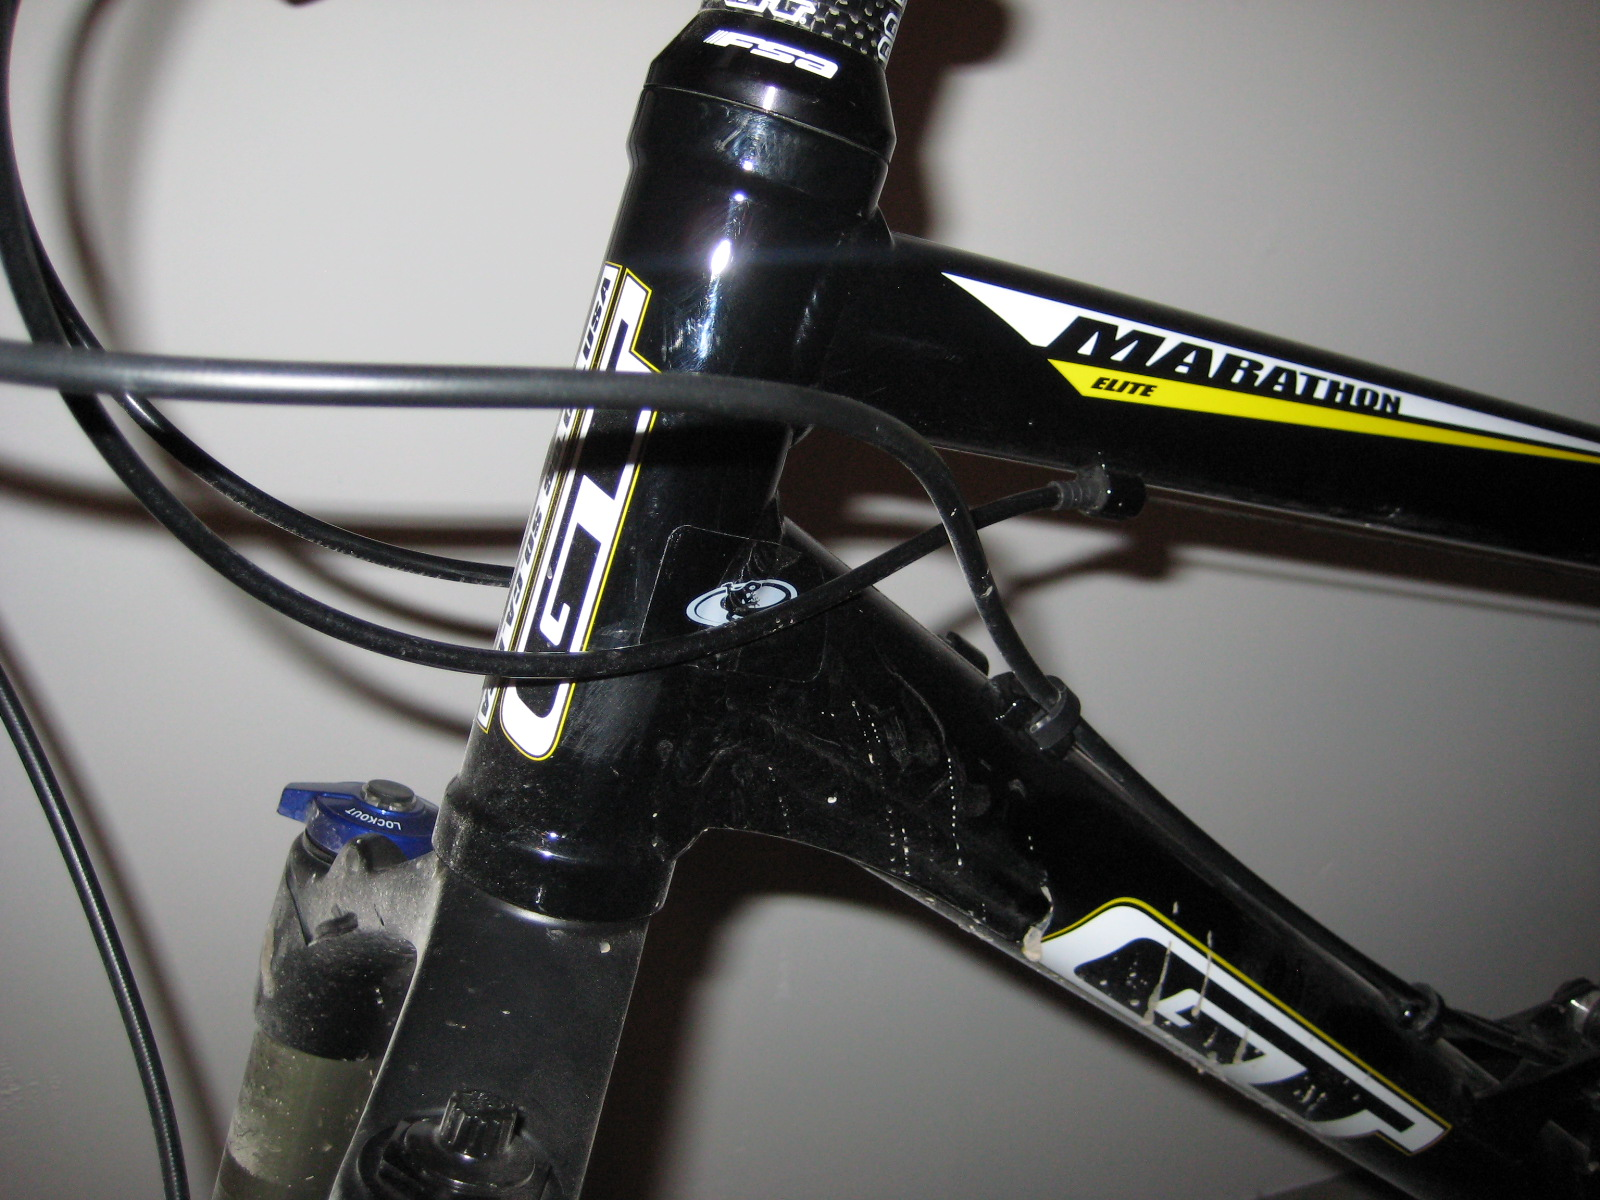 Upgrades / Mods for GT Marathon Elite-img_2004.jpg